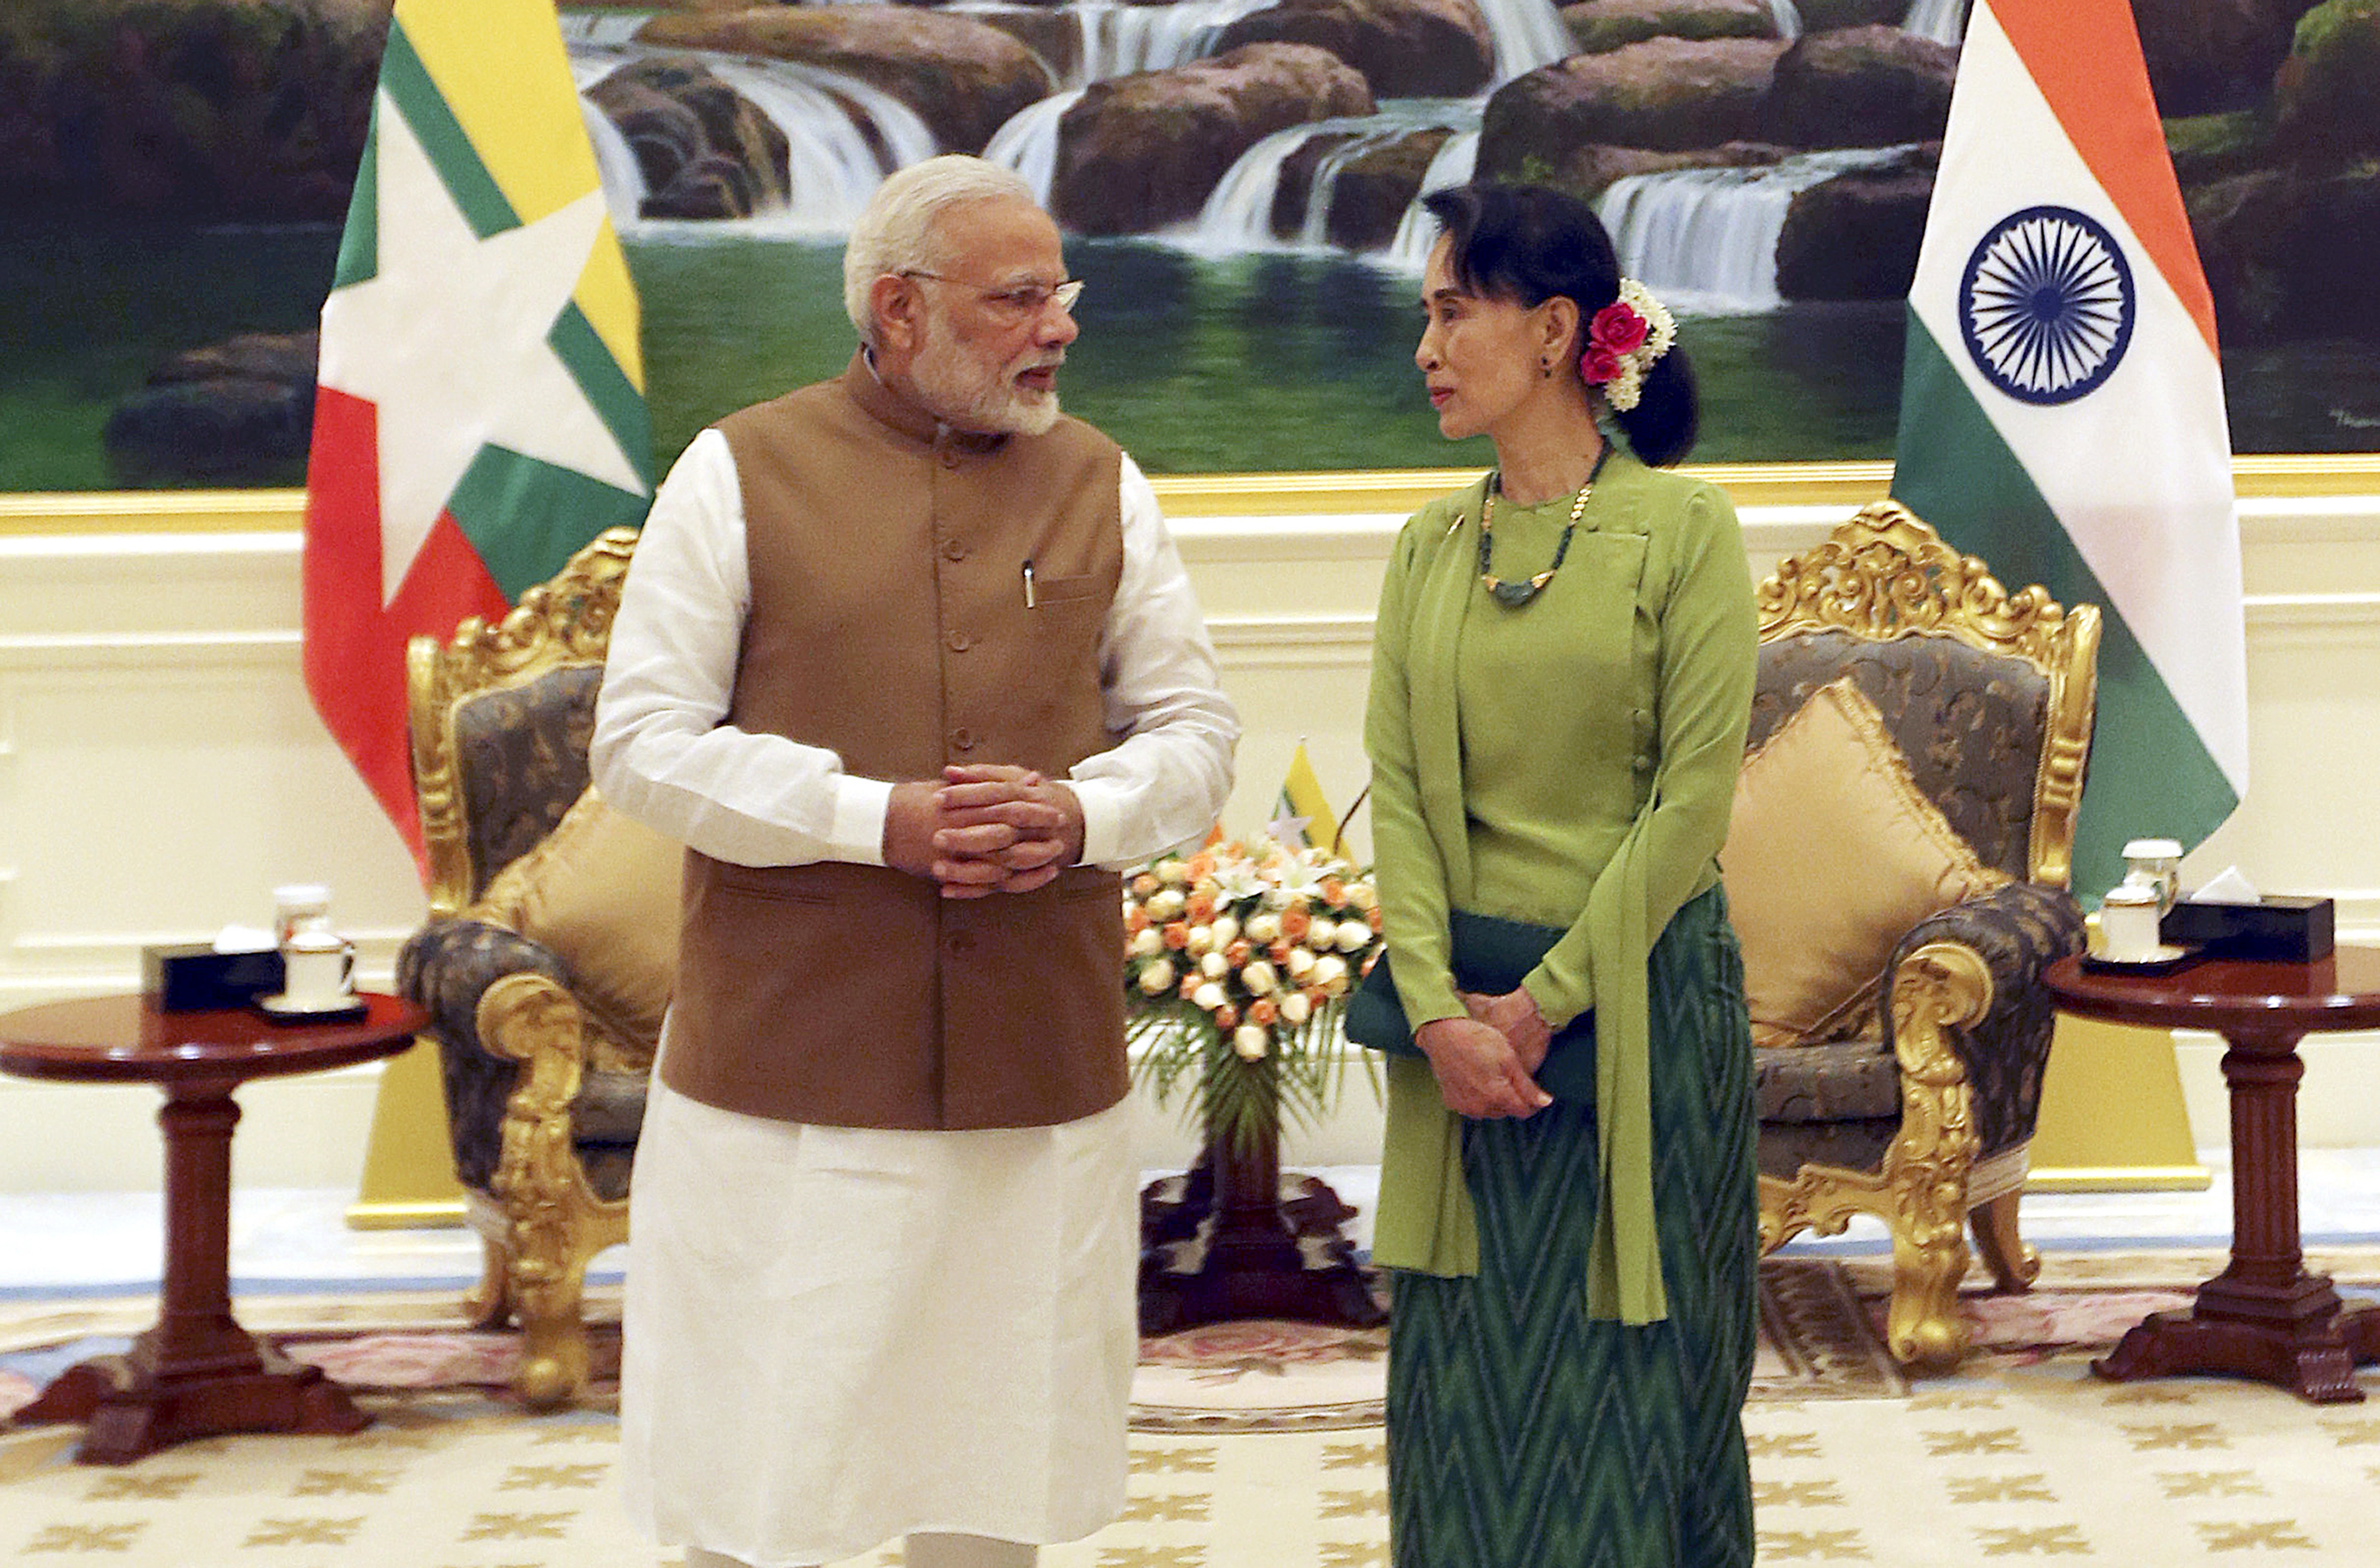 Myanmar's leader Aung San Suu Kyi, right, speaks with Indina Prime Minister Narendra Modi, left, at the Presidential Palace in Naypyitaw, Myanmar, Sept 6, 2017.